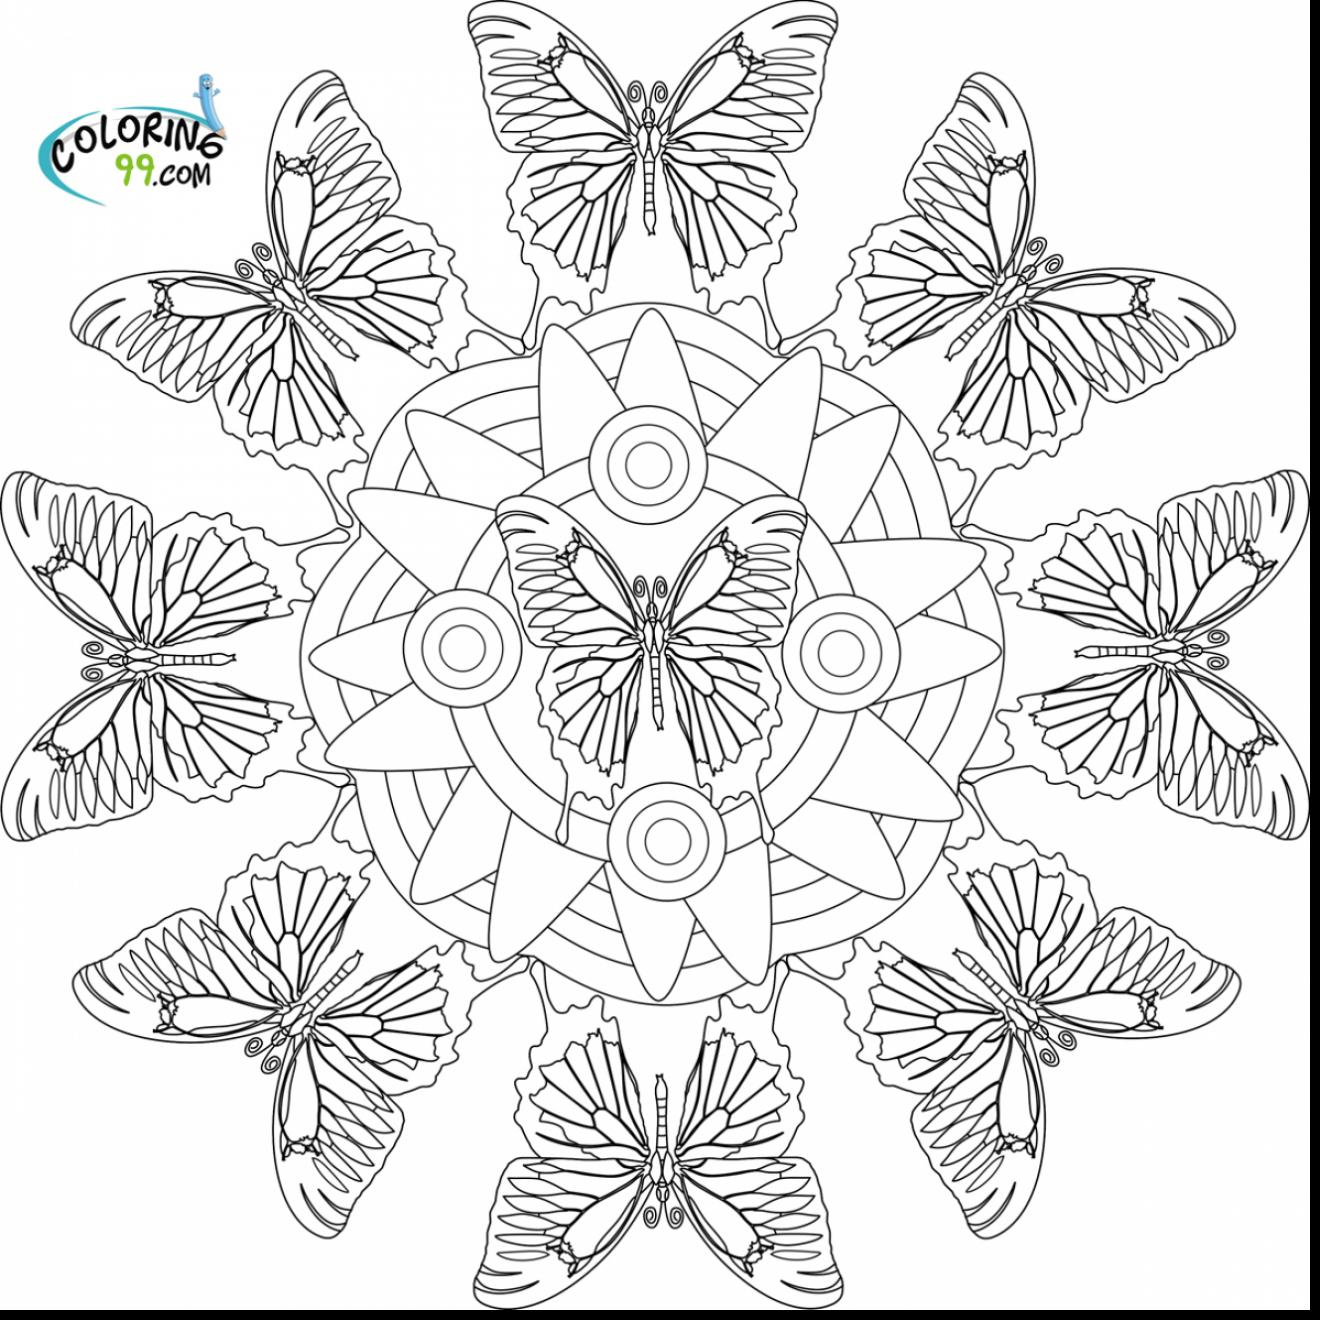 Advanced Mandala Coloring Pages Printable At Getdrawings Com Free